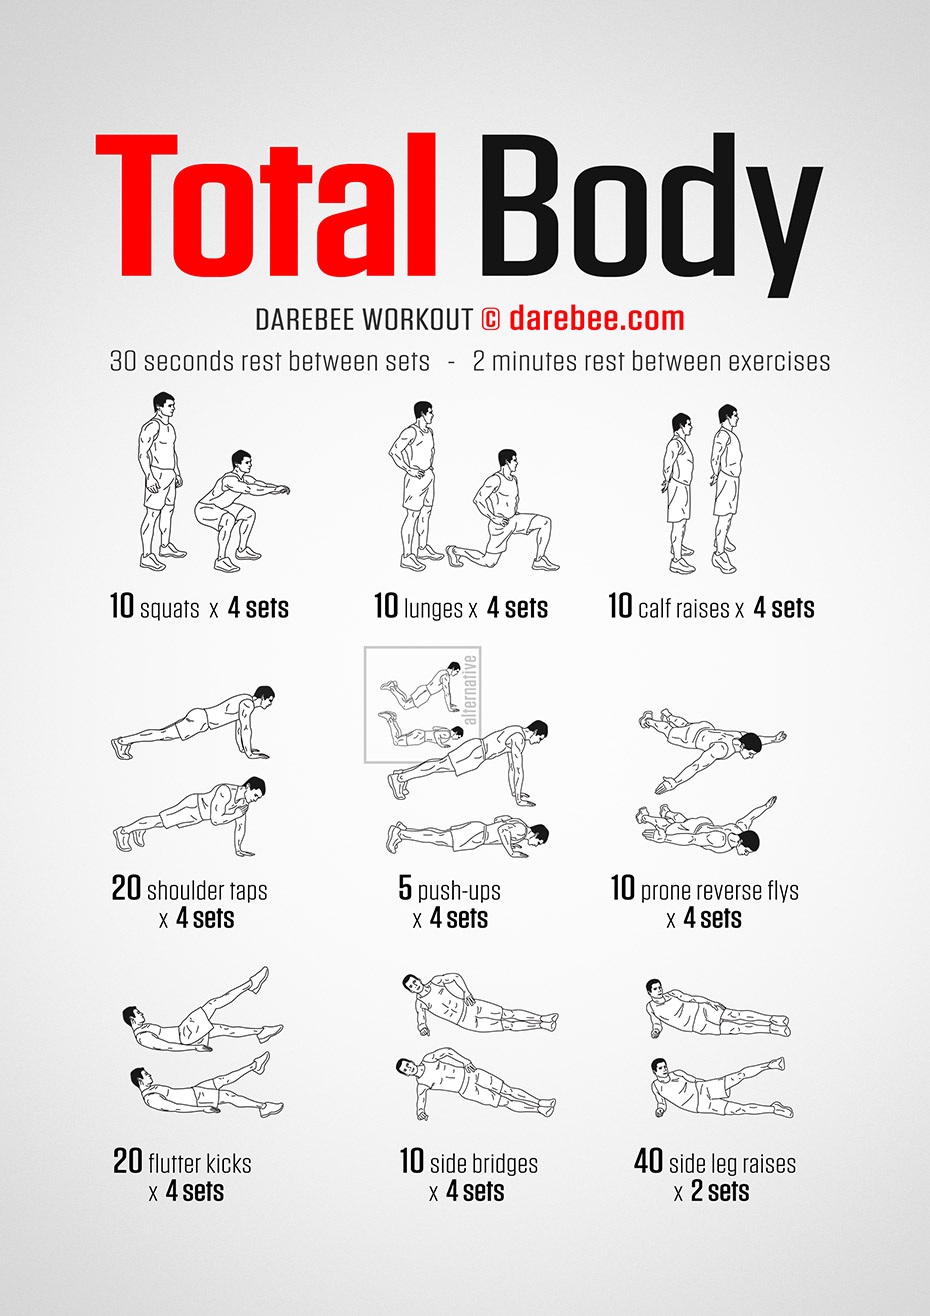 Photo of No-Equipment Total Body Workout by #DAREBEE #darebee #workout #fitness #wod